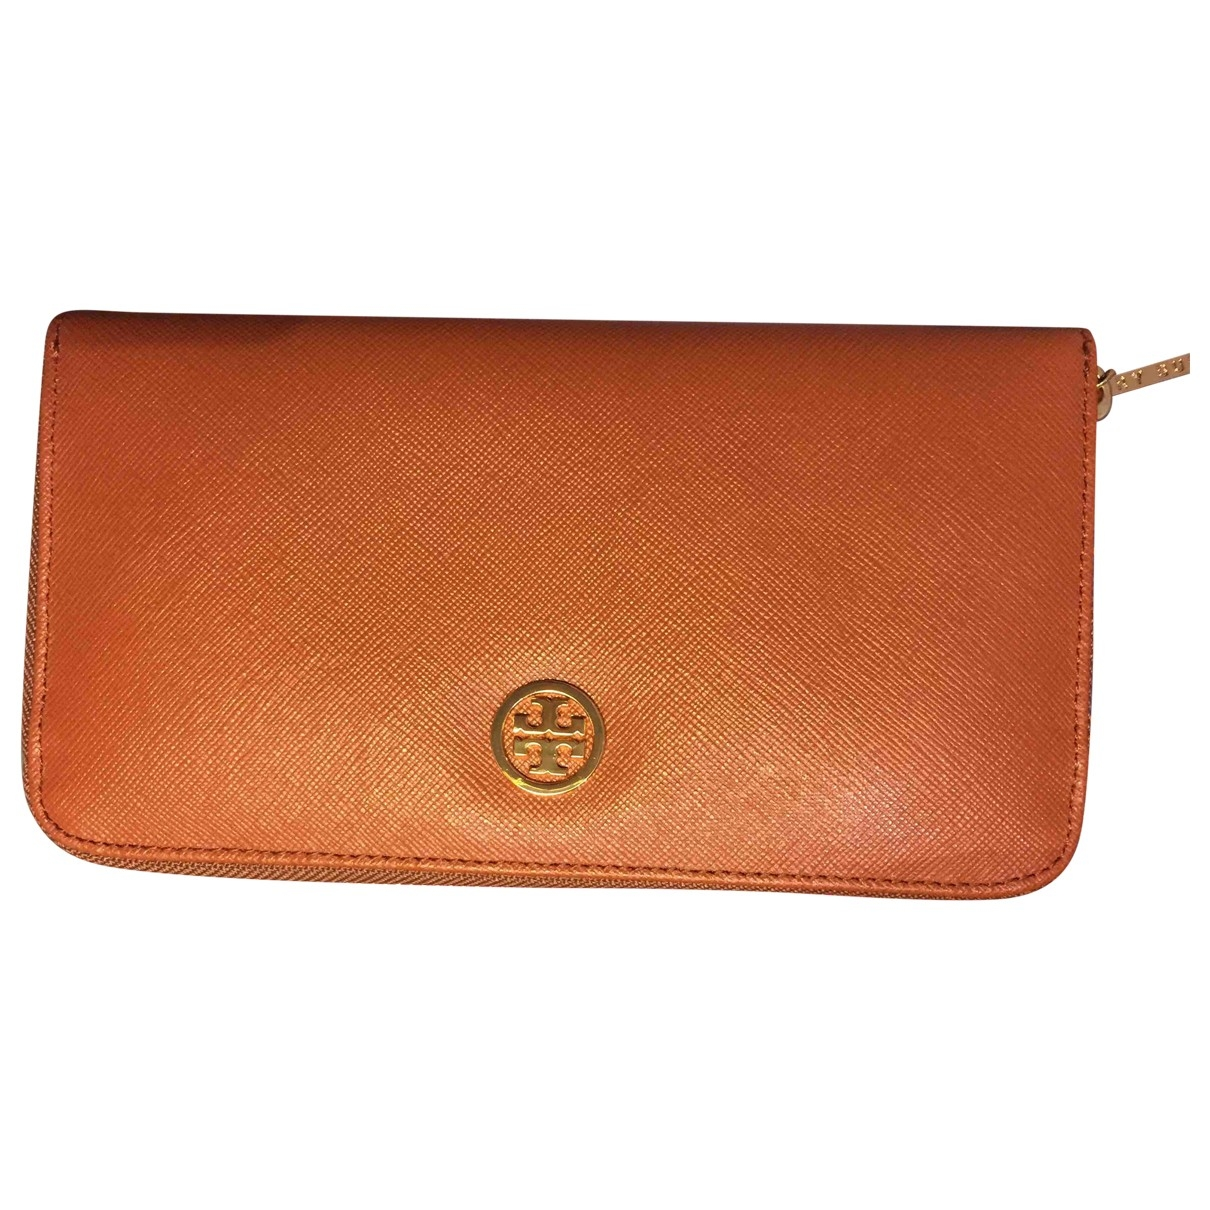 Tory Burch \N Kleinlederwaren in  Kamel Leder